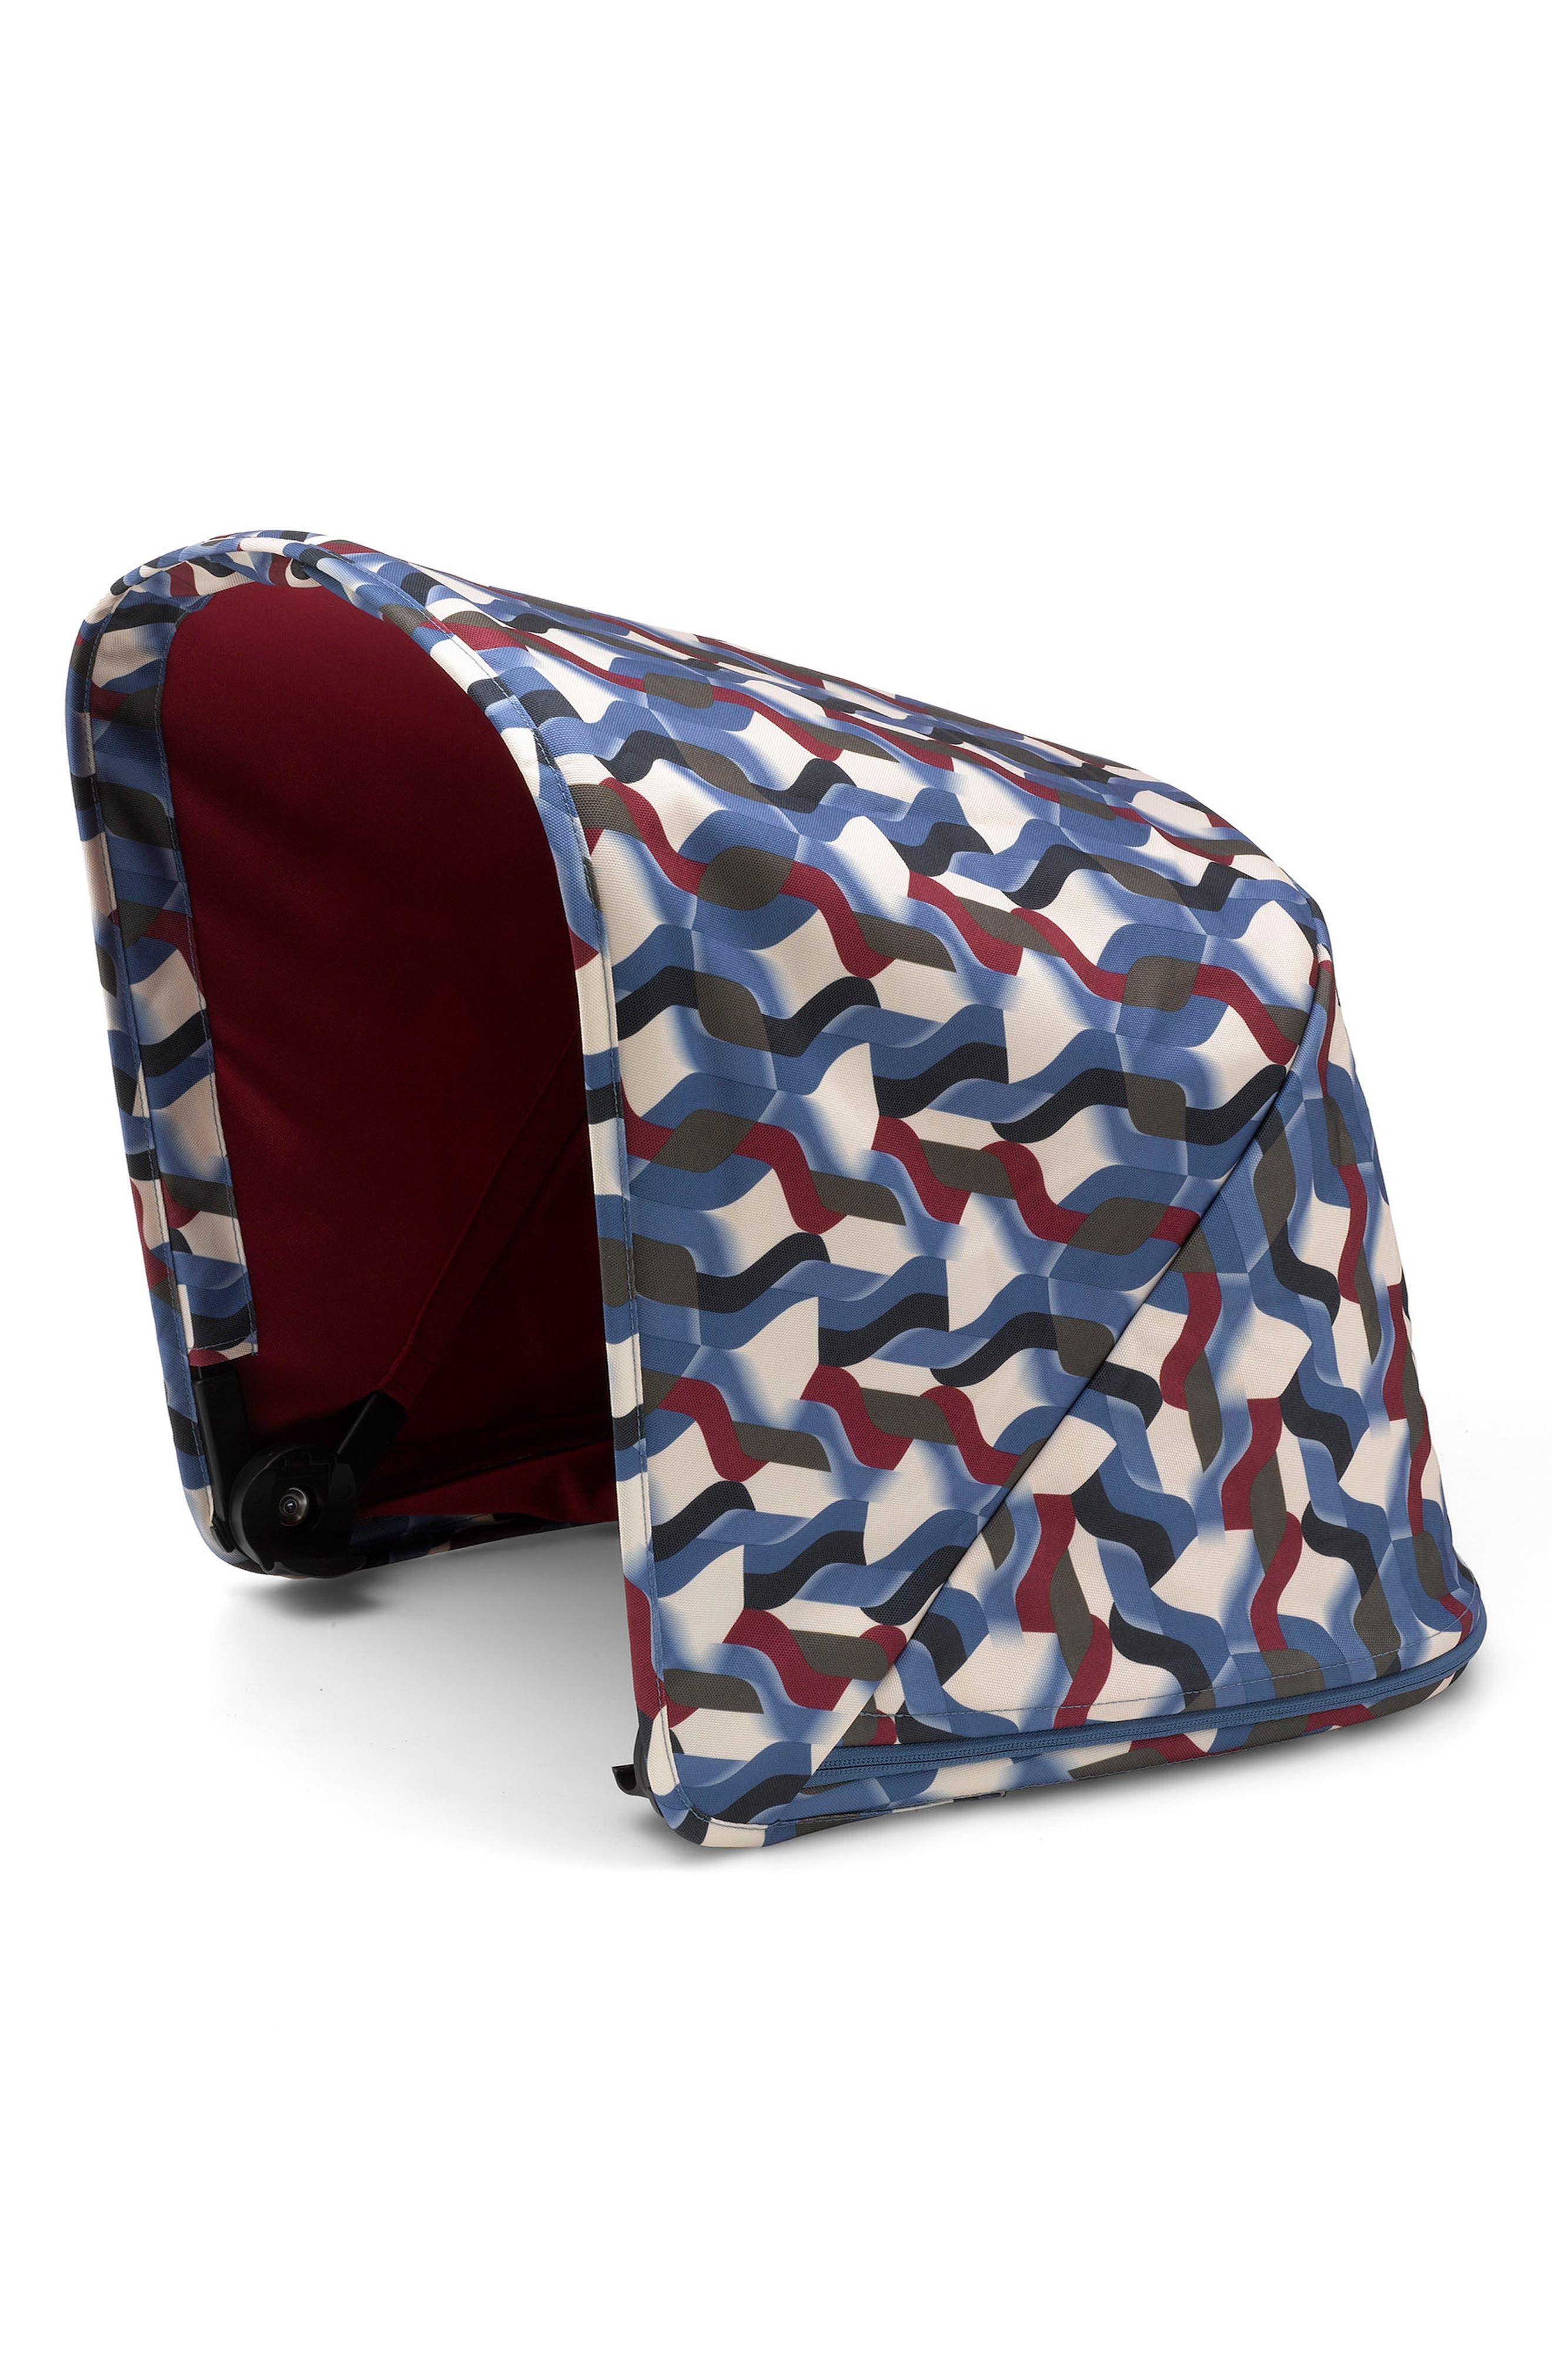 Waves Sun Canopy for Bugaboo Fox Stroller,                             Main thumbnail 1, color,                             Waves Print